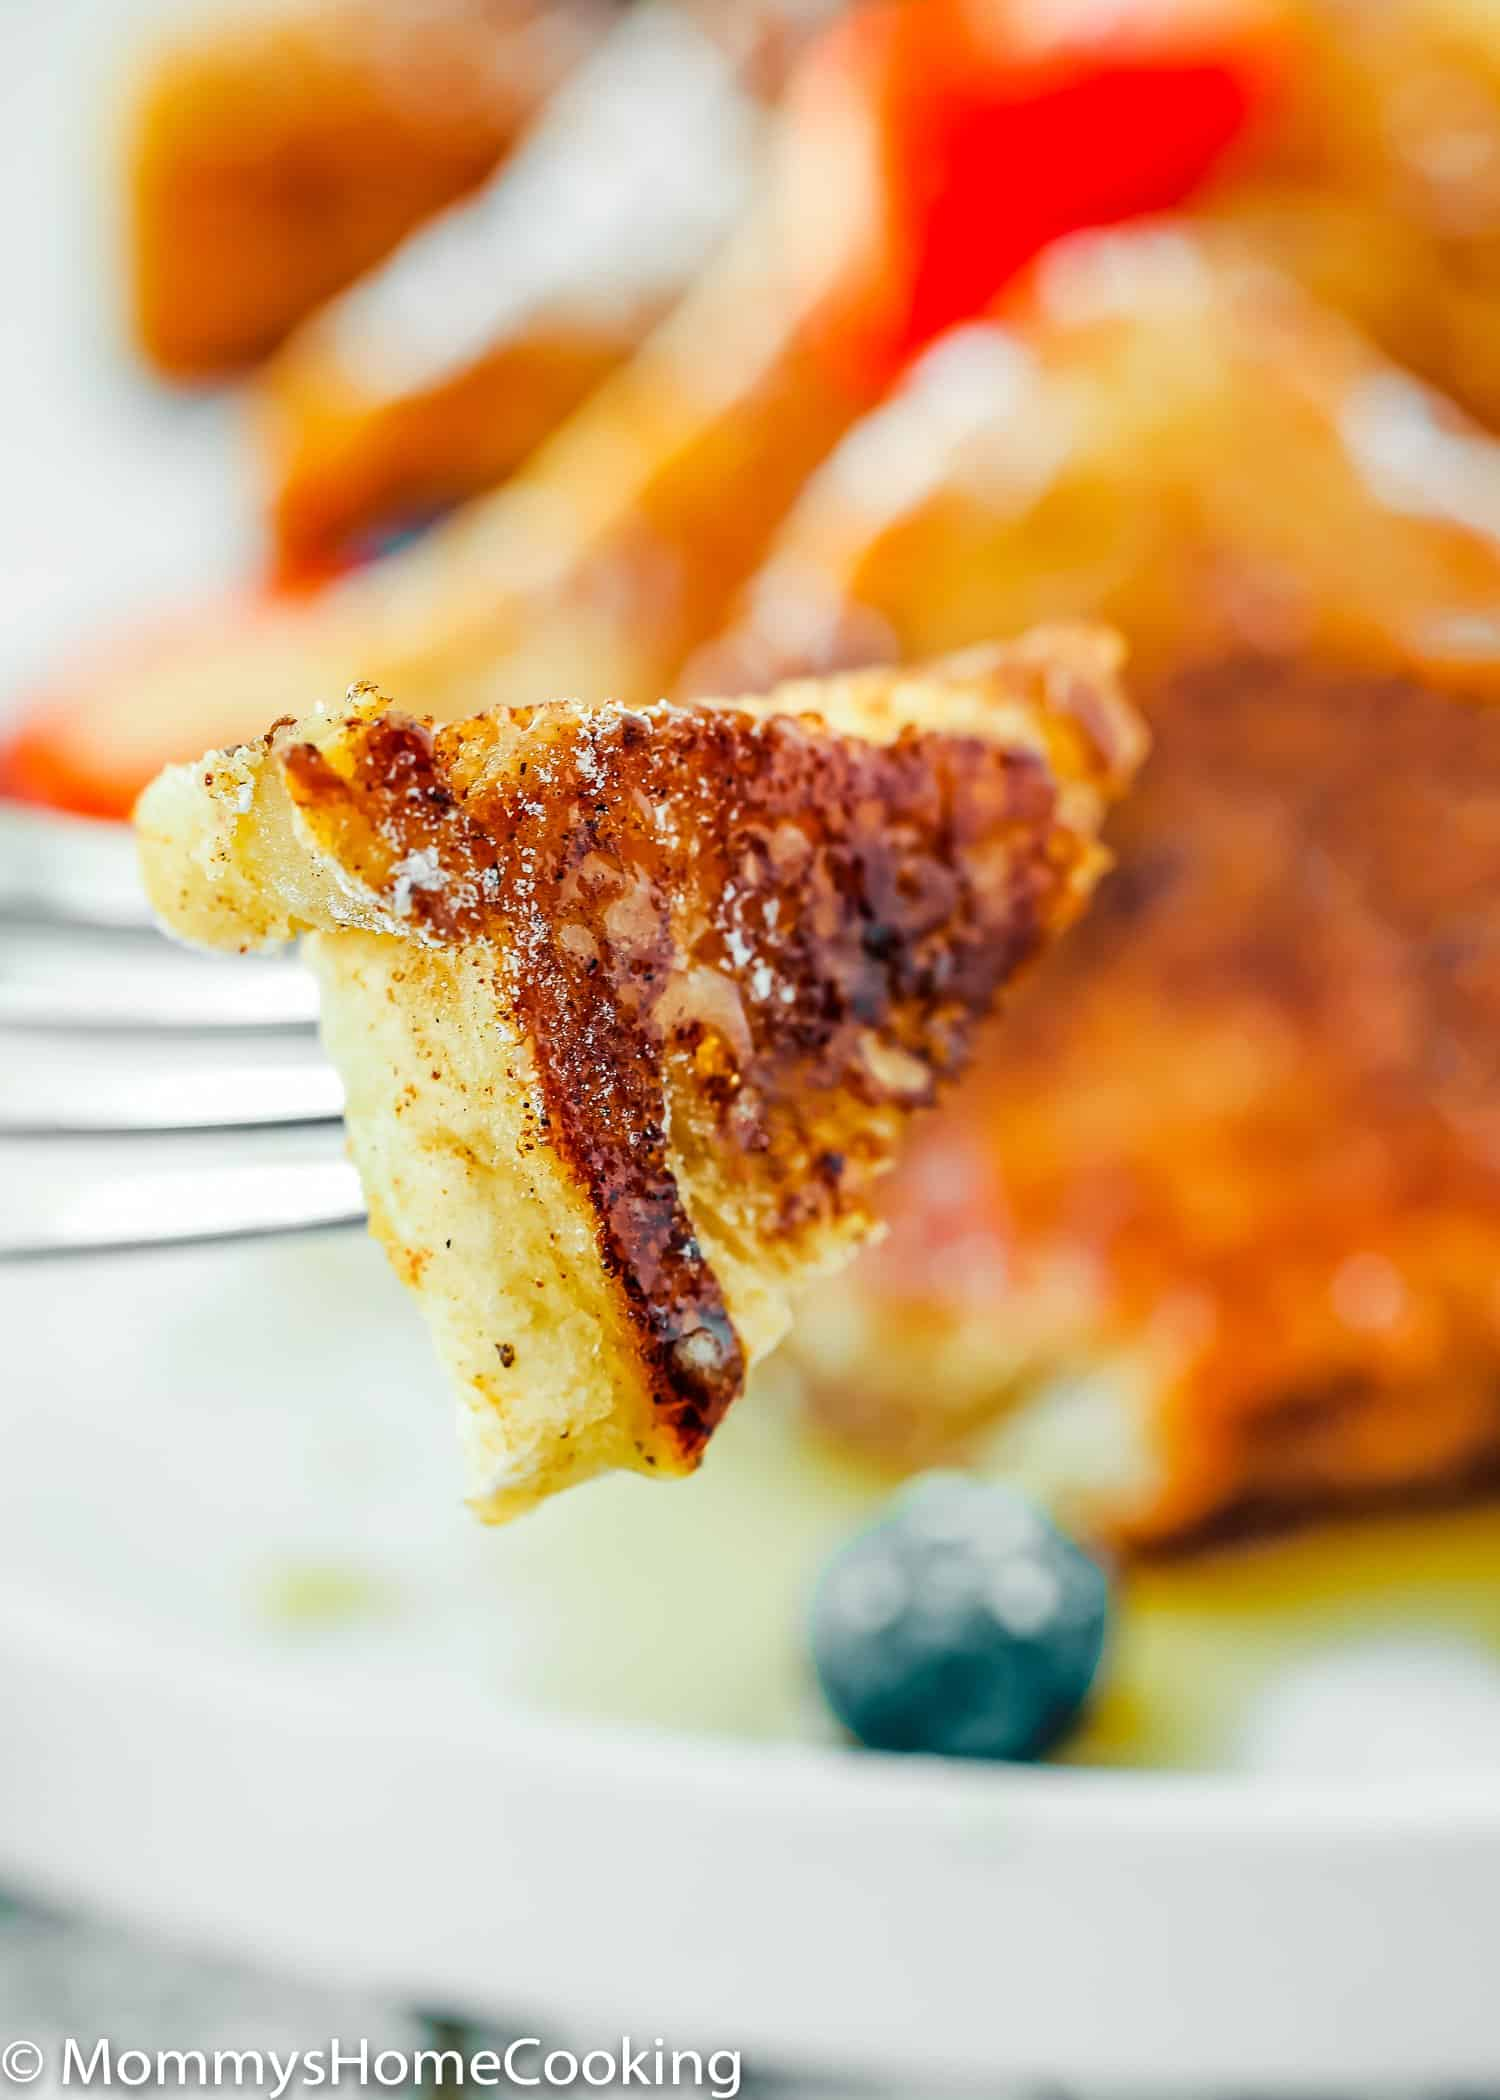 Learn how to make French toast without eggs! This easy French toast recipe produces the absolute BEST Eggless French Toast! They're fluffy in the inside and lightly crisp and golden on the outside. Just Perfection! https://mommyhsomecooking.com